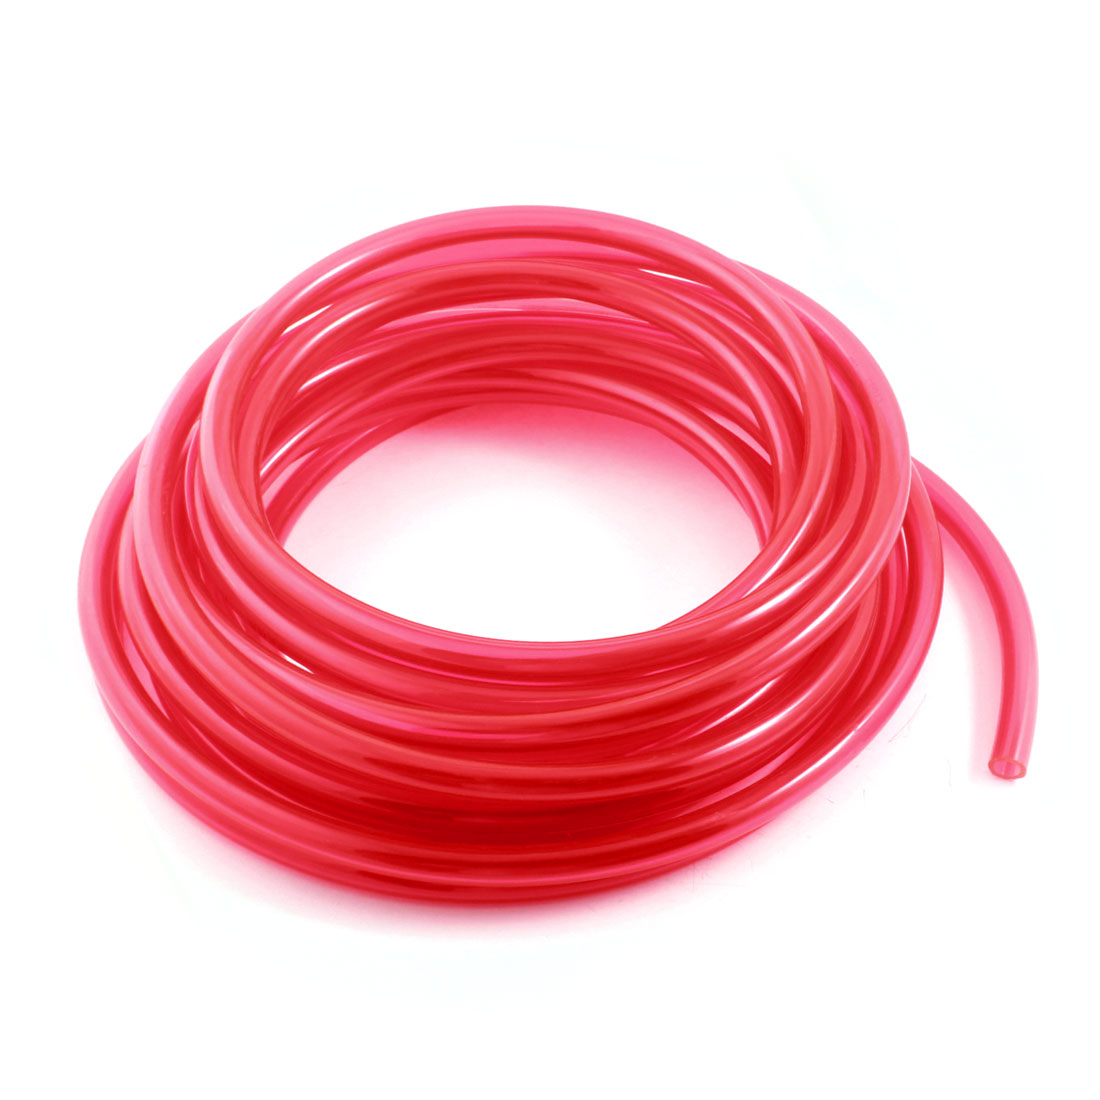 33Ft 6.5x10mm Air Compressor Fuel Gas Petrol Diesel PU Line Tube Hose Clear Red